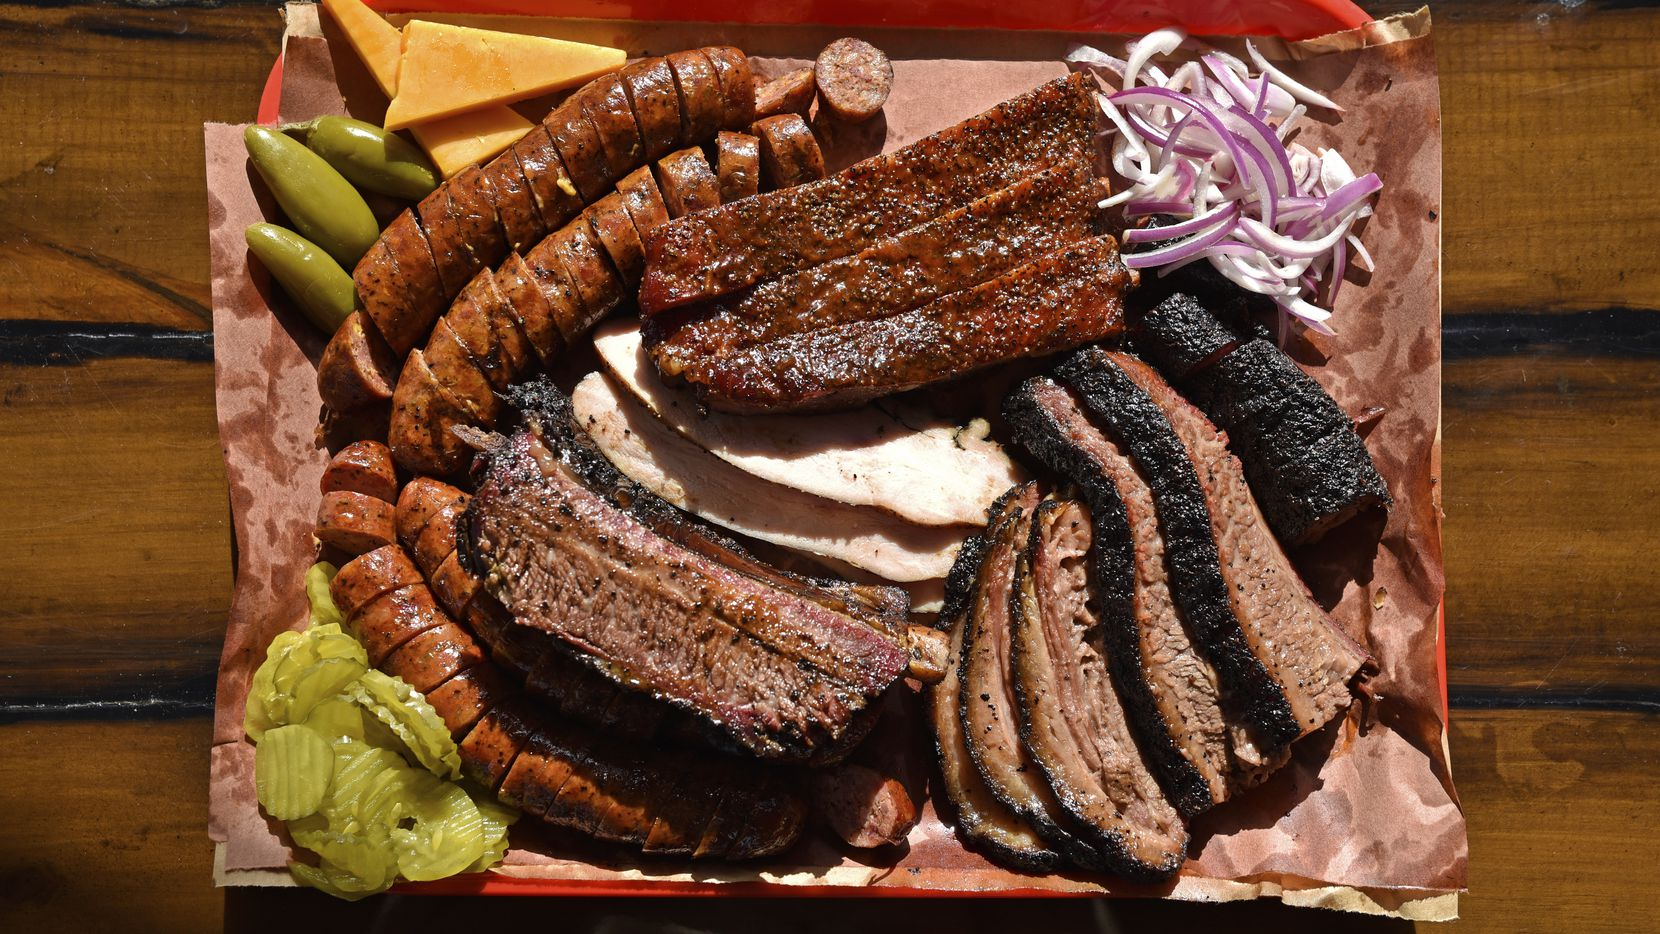 An example of what you can order at Terry Black's BBQ in Dallas, Nov. 25, 2019. The tray includes brisket, beef ribs, pork ribs, turkey, original sausage, and jalapeño cheese sausage. Ben Torres/Special Contributor